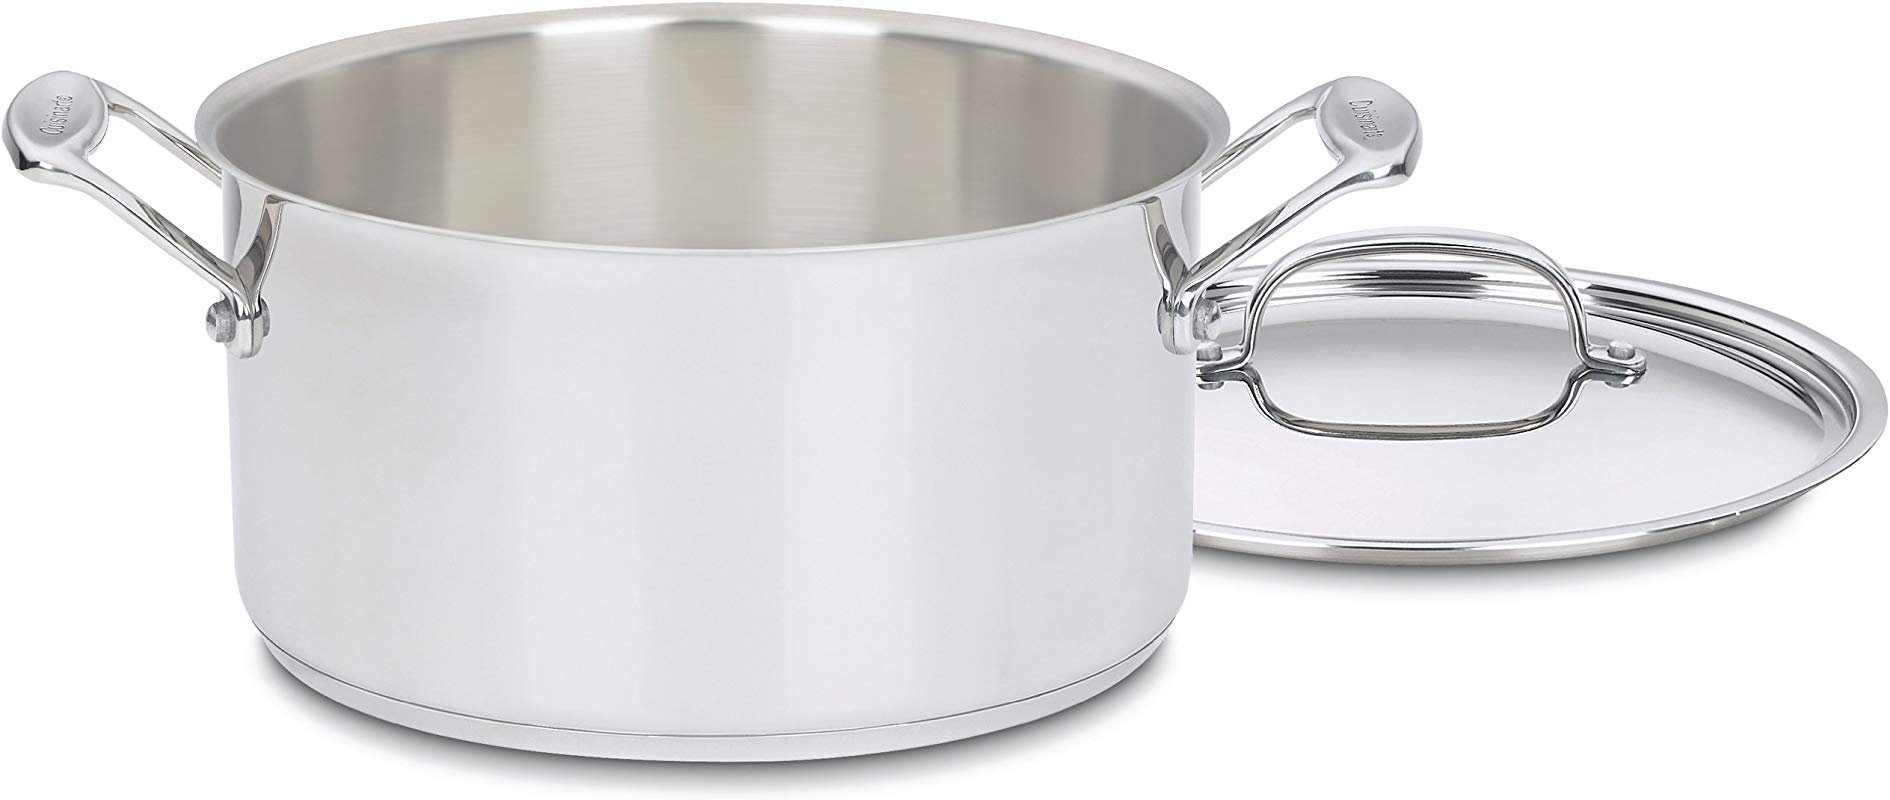 Cuisinart 744 24 Chef S Classic Stainless Stockpot With Cover 6 Quart